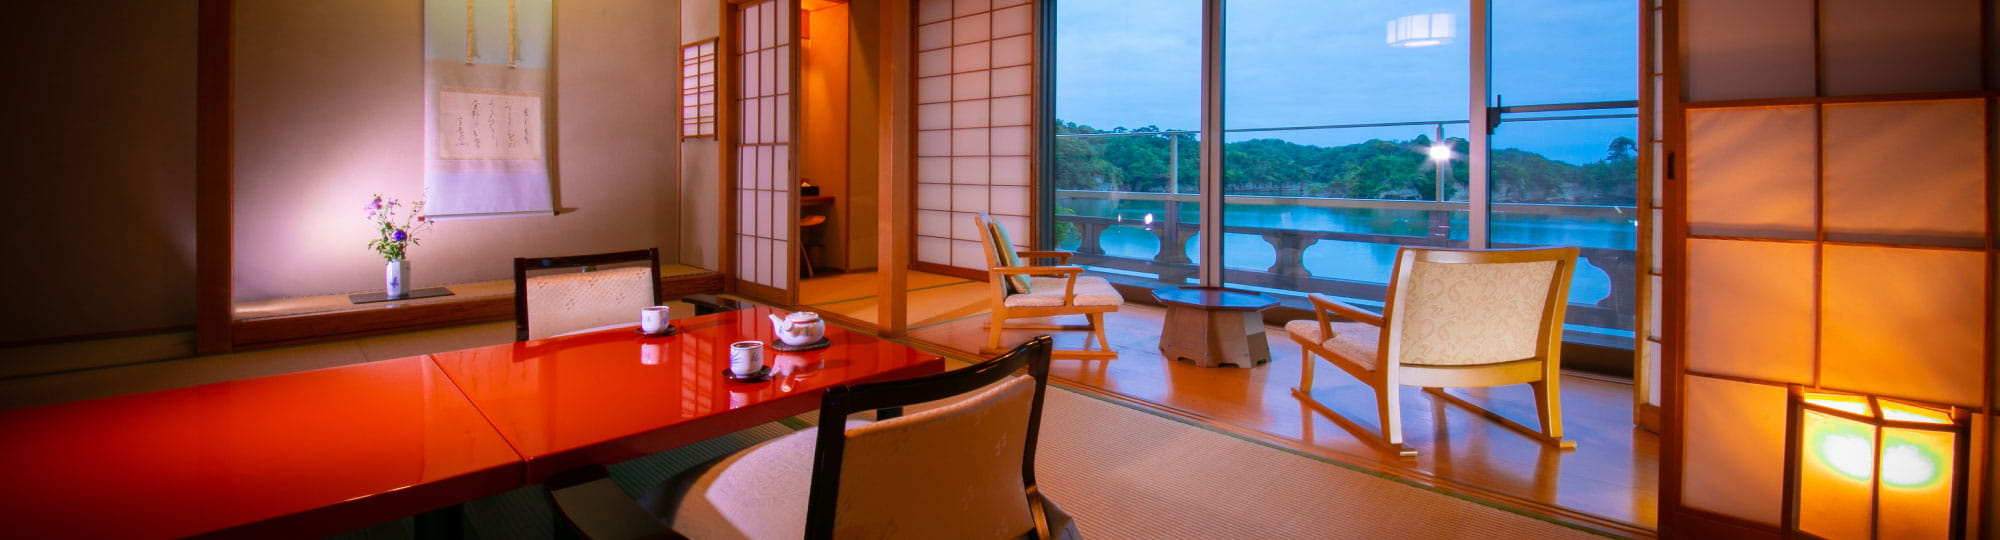 The great sceneries from your room is exclusive to you and your important ones.